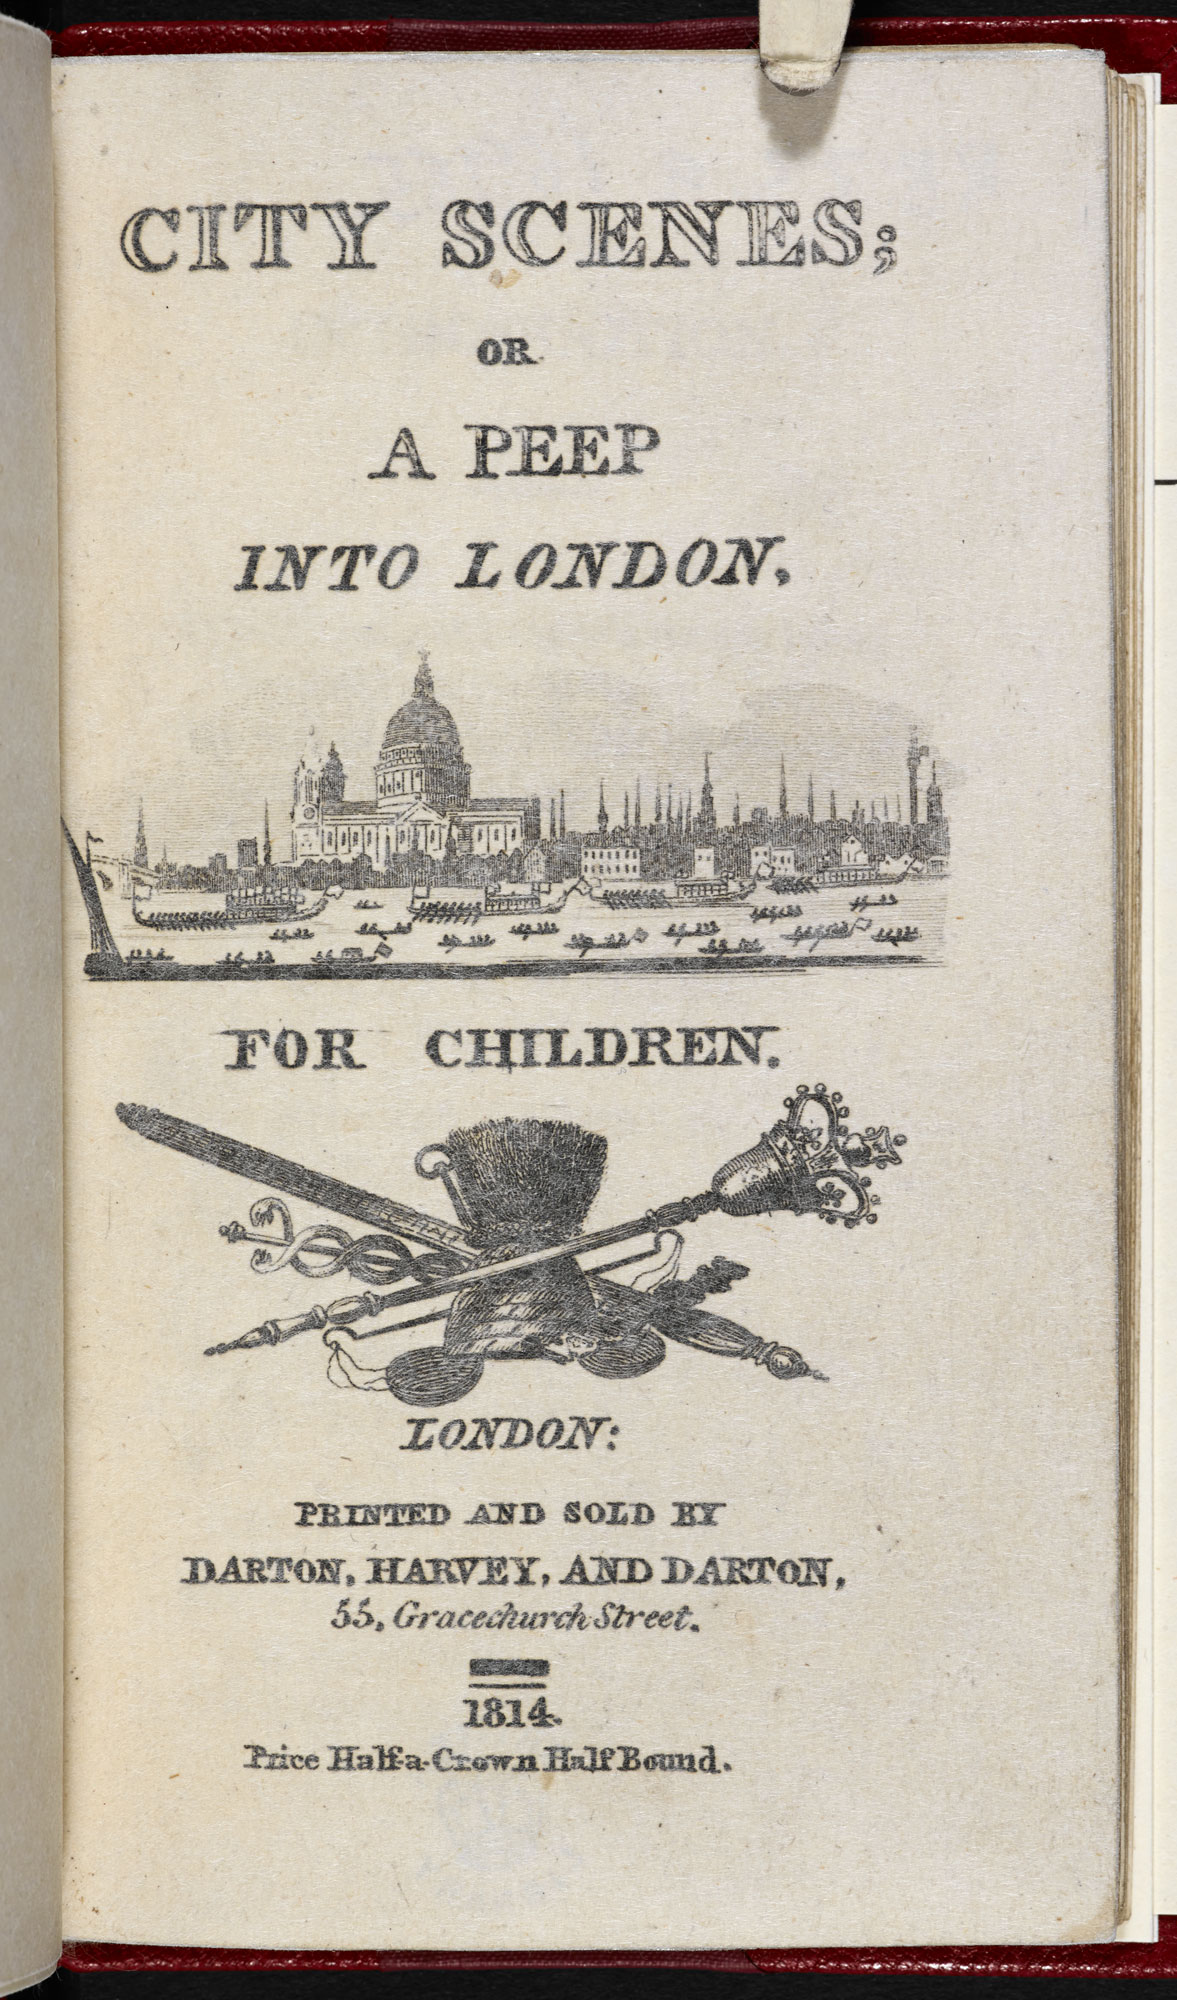 City Scenes; or A Peep Into London [page: title page]